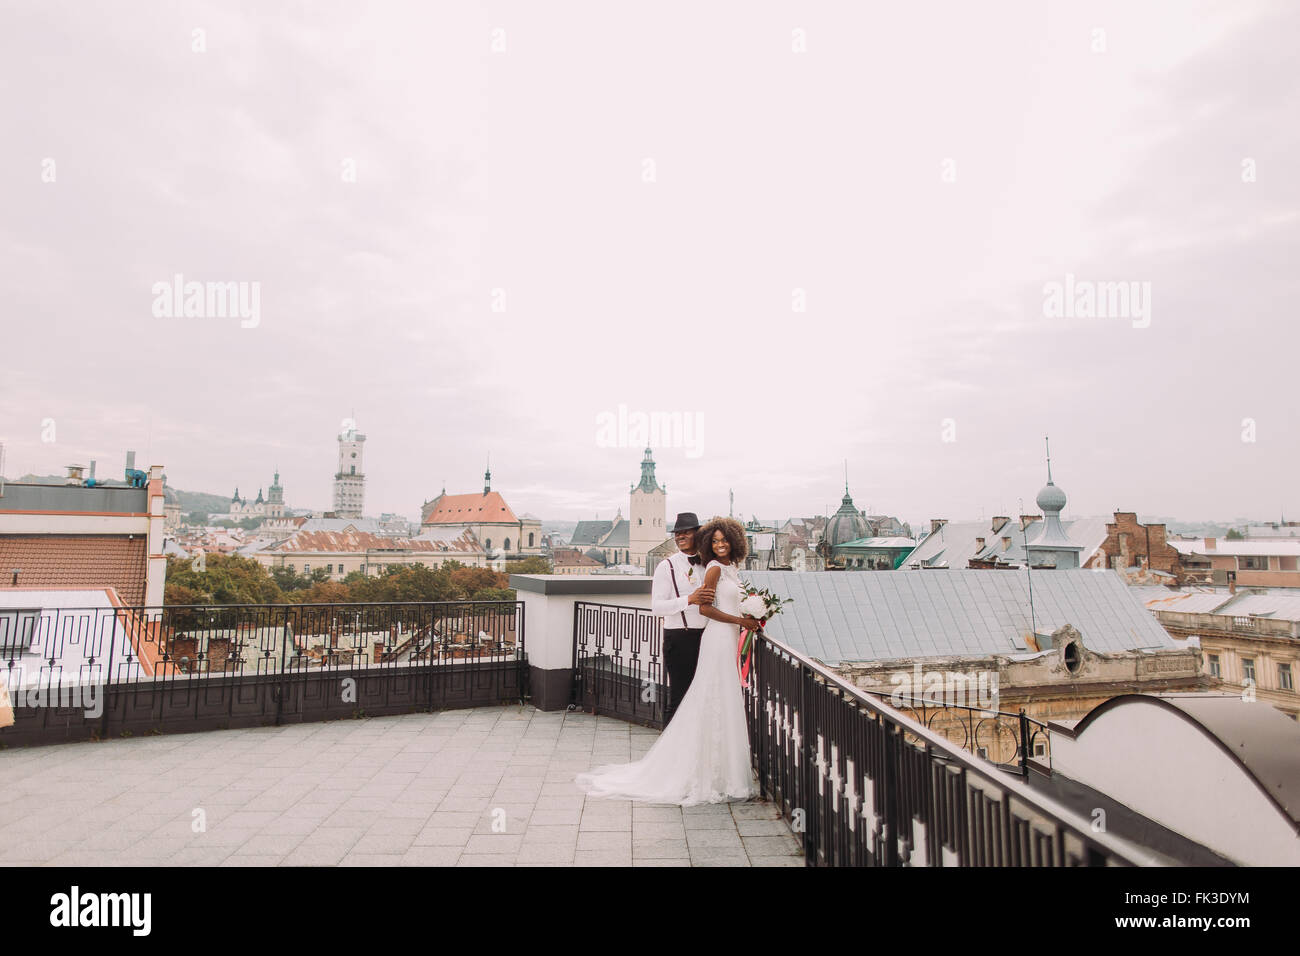 Couple de mariage africaine sur le toit. L'étonnante architecture Lviv on background Photo Stock